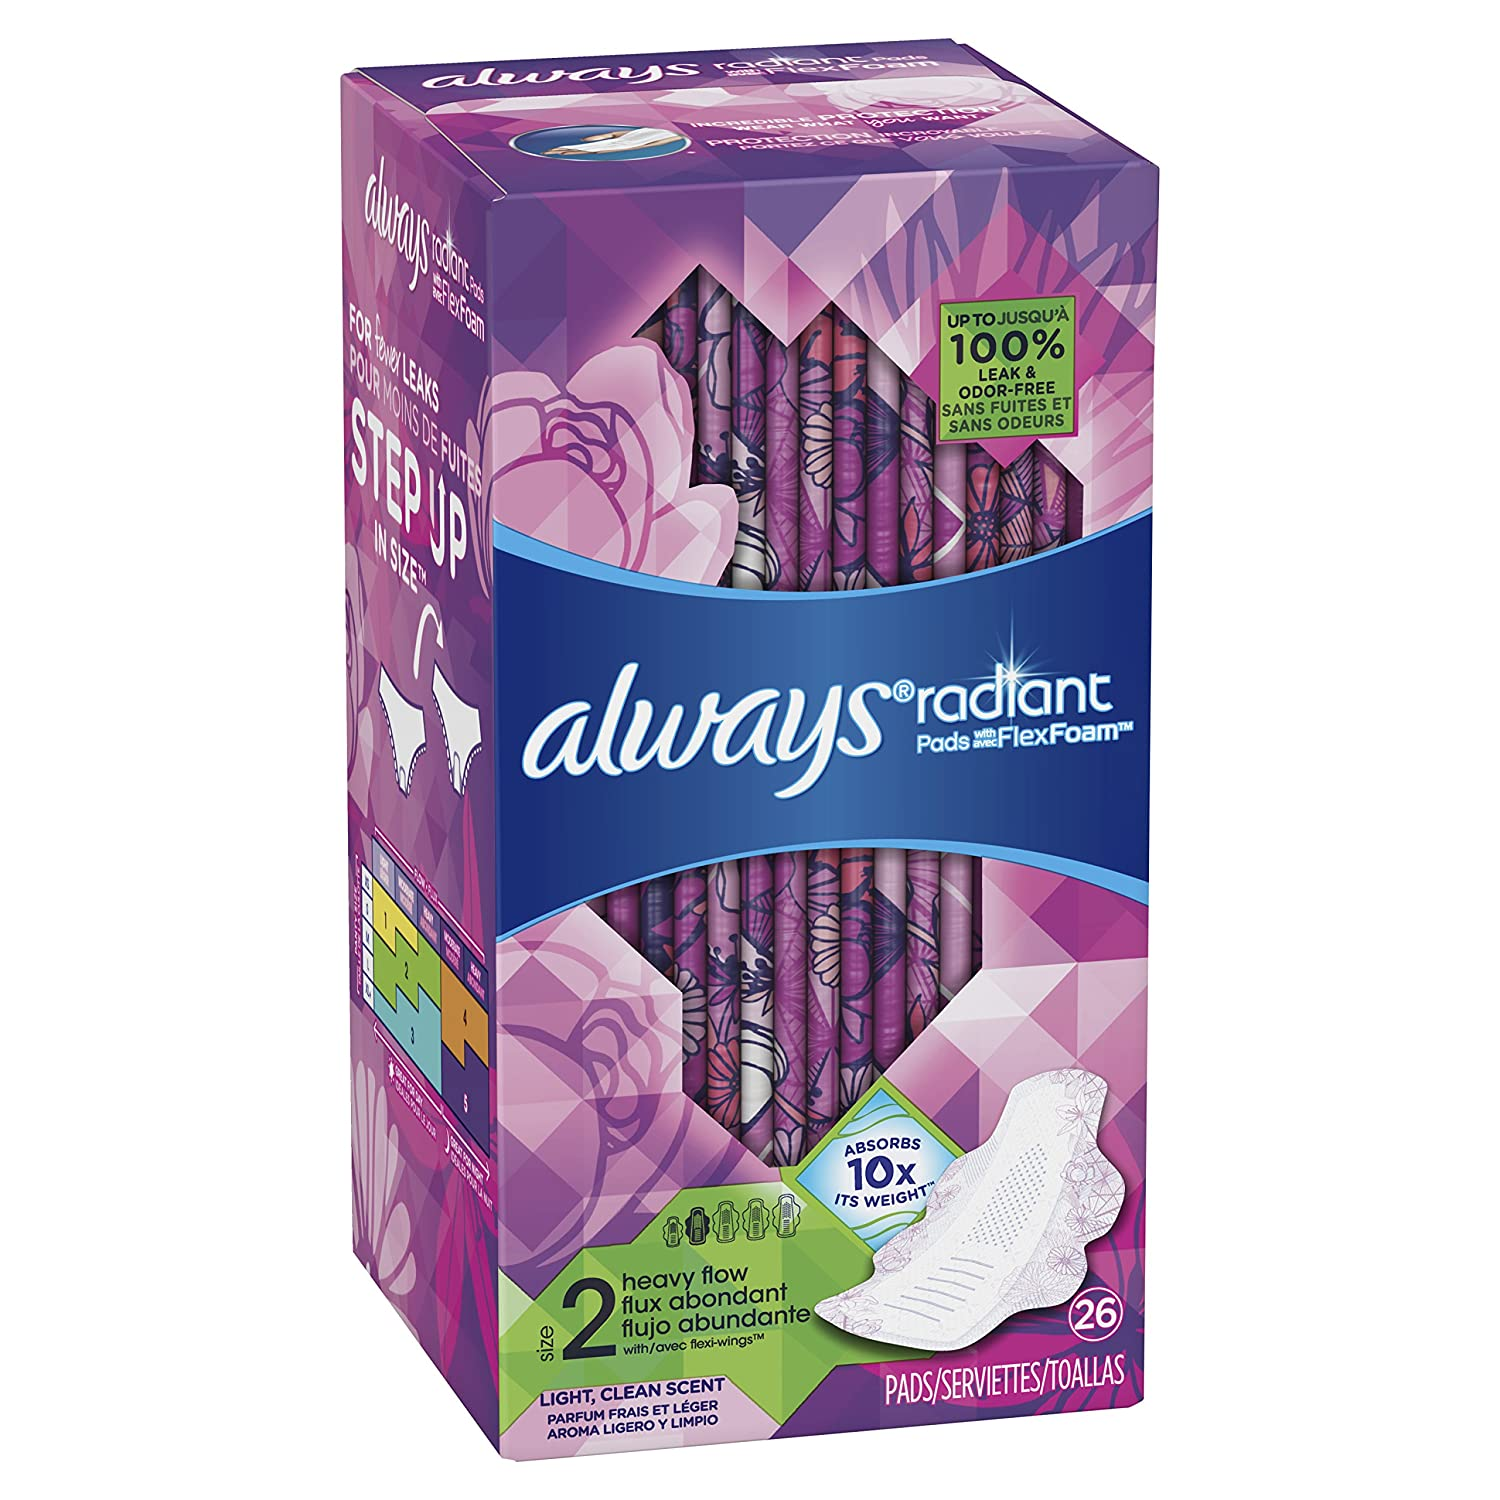 Amazon.com: Always Radiant Feminine Pads for Women, Size 2, Heavy Absorbency, with Flexfoam Wings, Light Clean Scent, 26 Count: Health & Personal Care